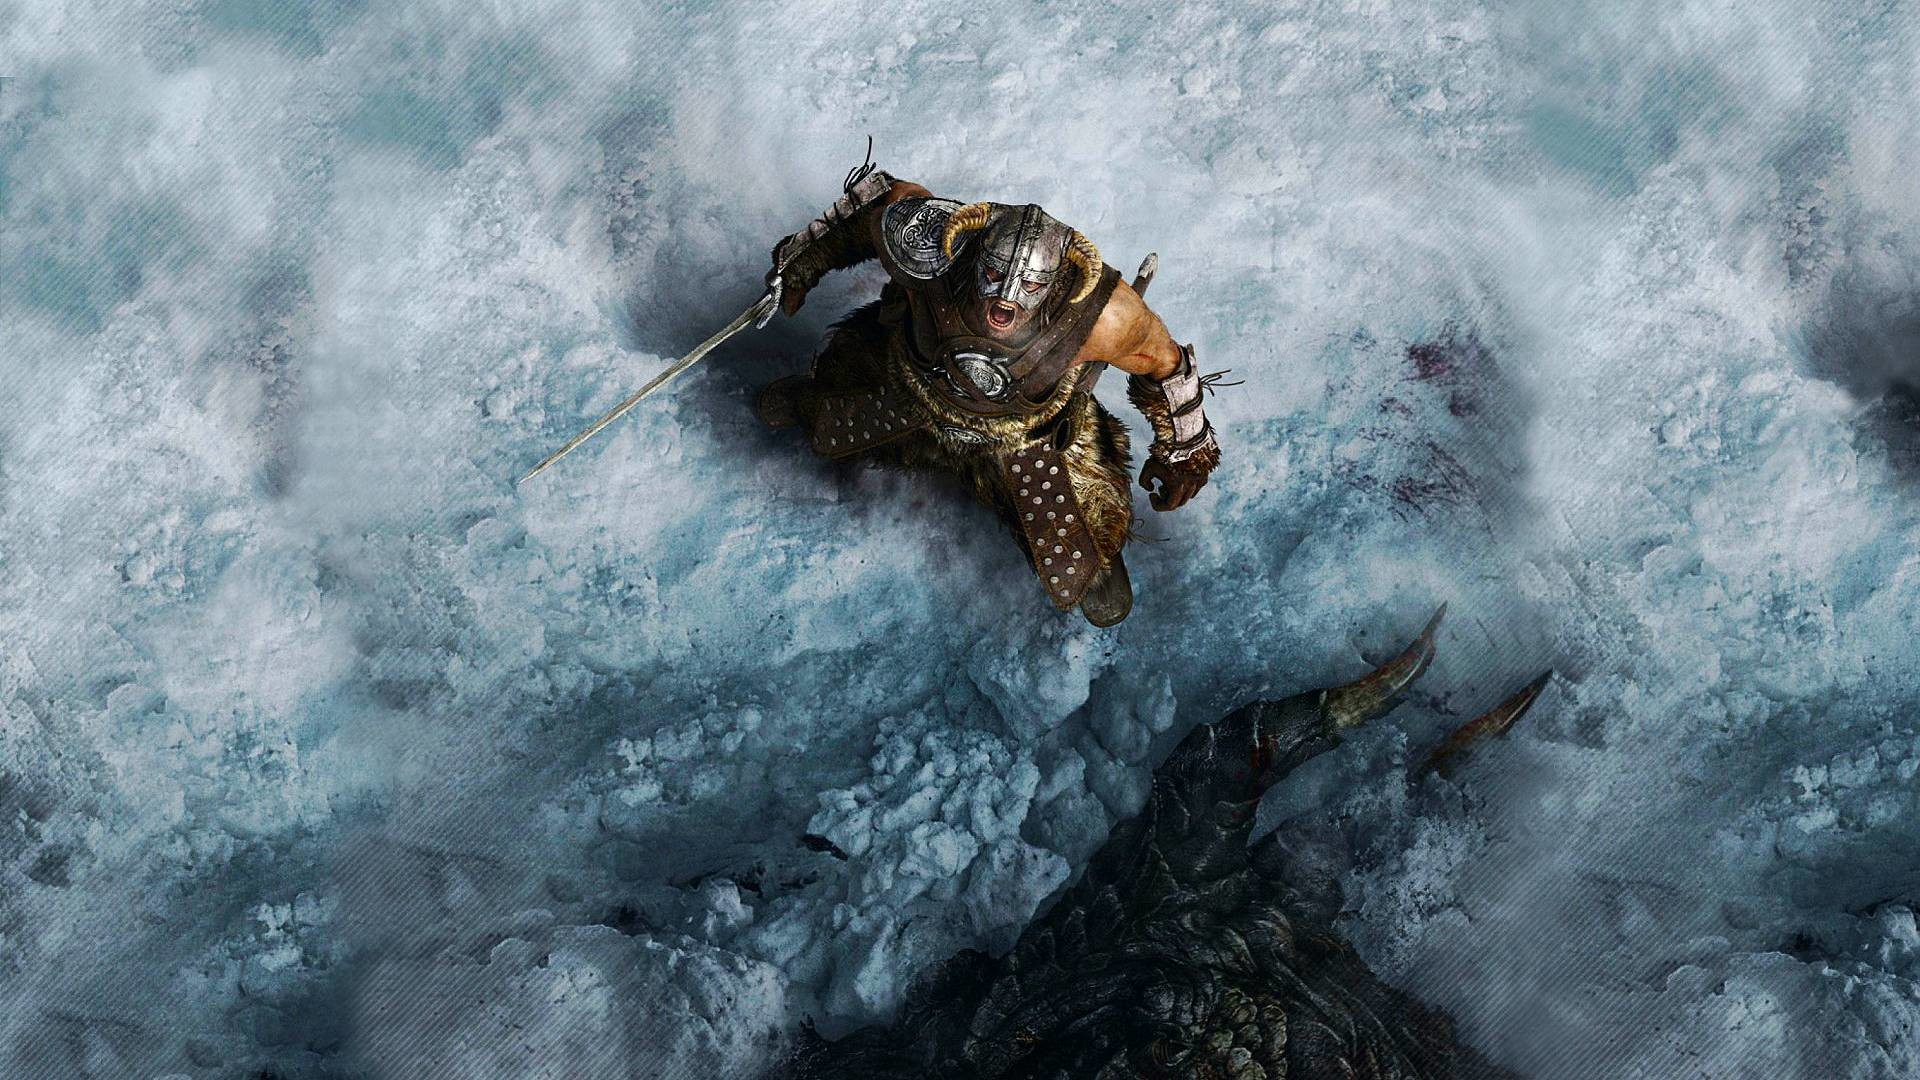 Wallpapers For > Skyrim Wallpapers 1080p